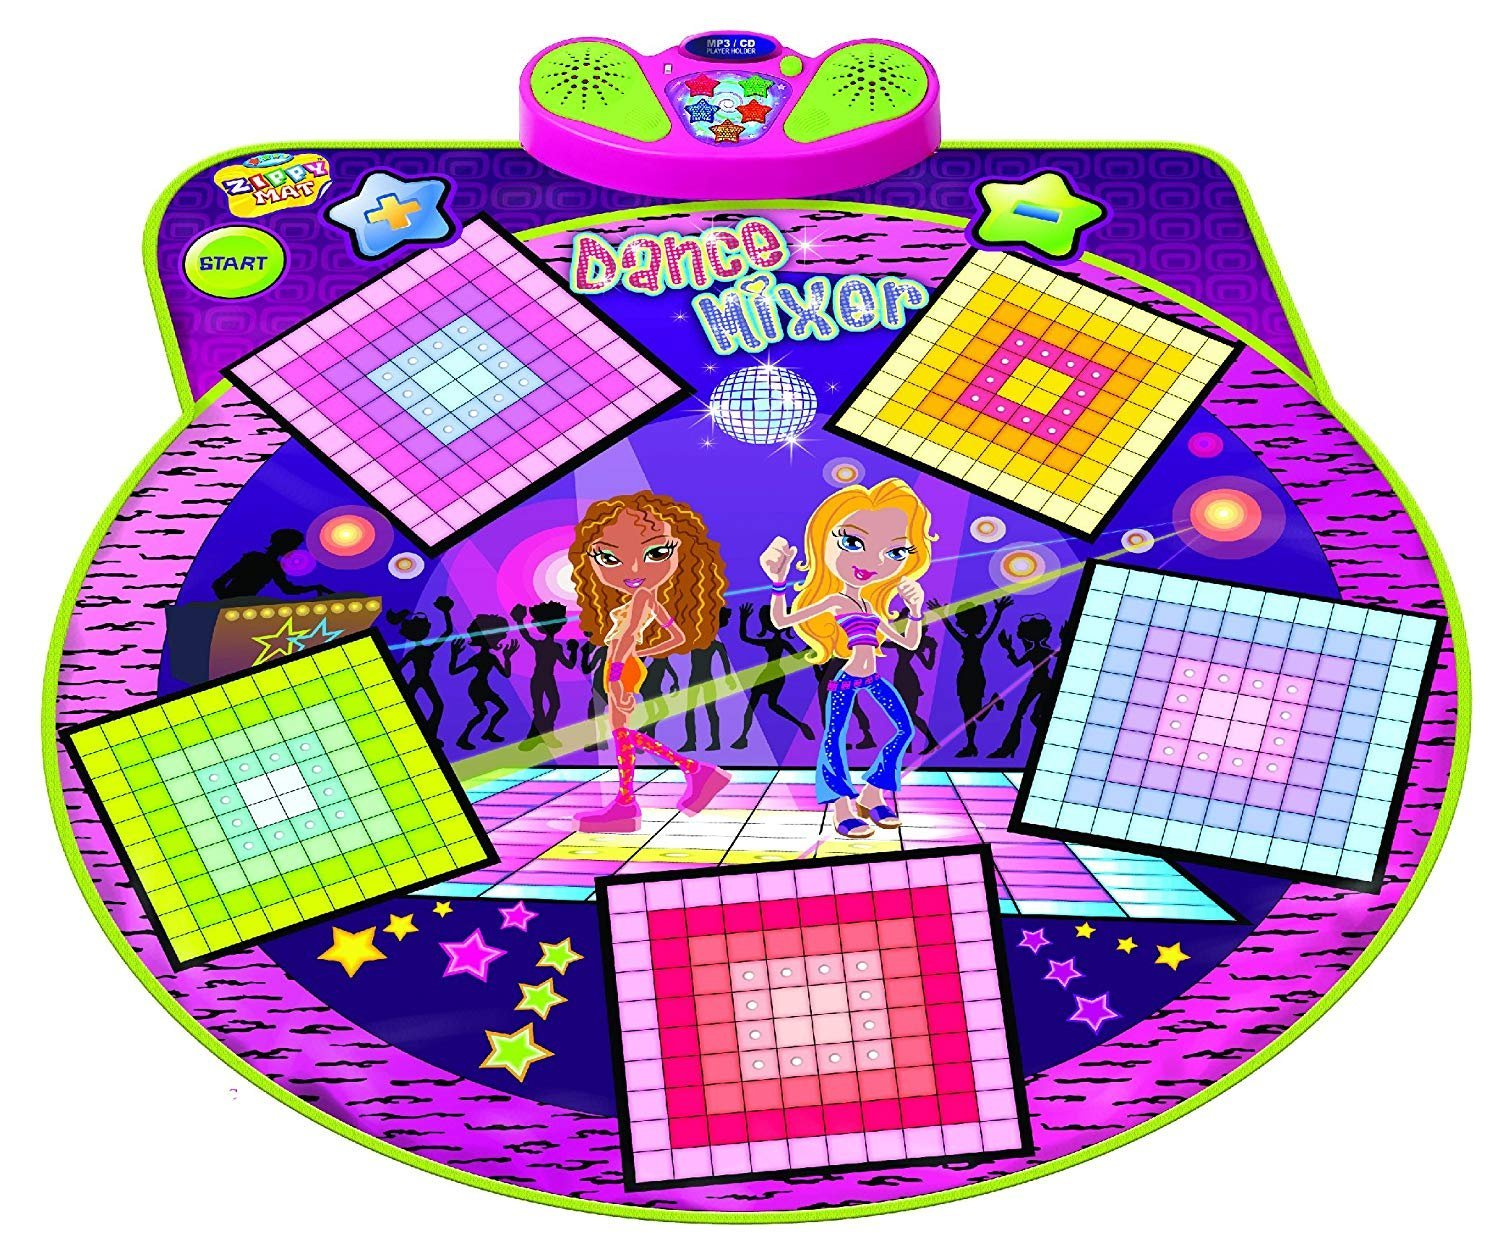 Dance Playmat Toys, Challenge Rhythm & Beat Dancing Mat, Smart Musical Pad for Babies and Children Infants with Kids' Playing Games